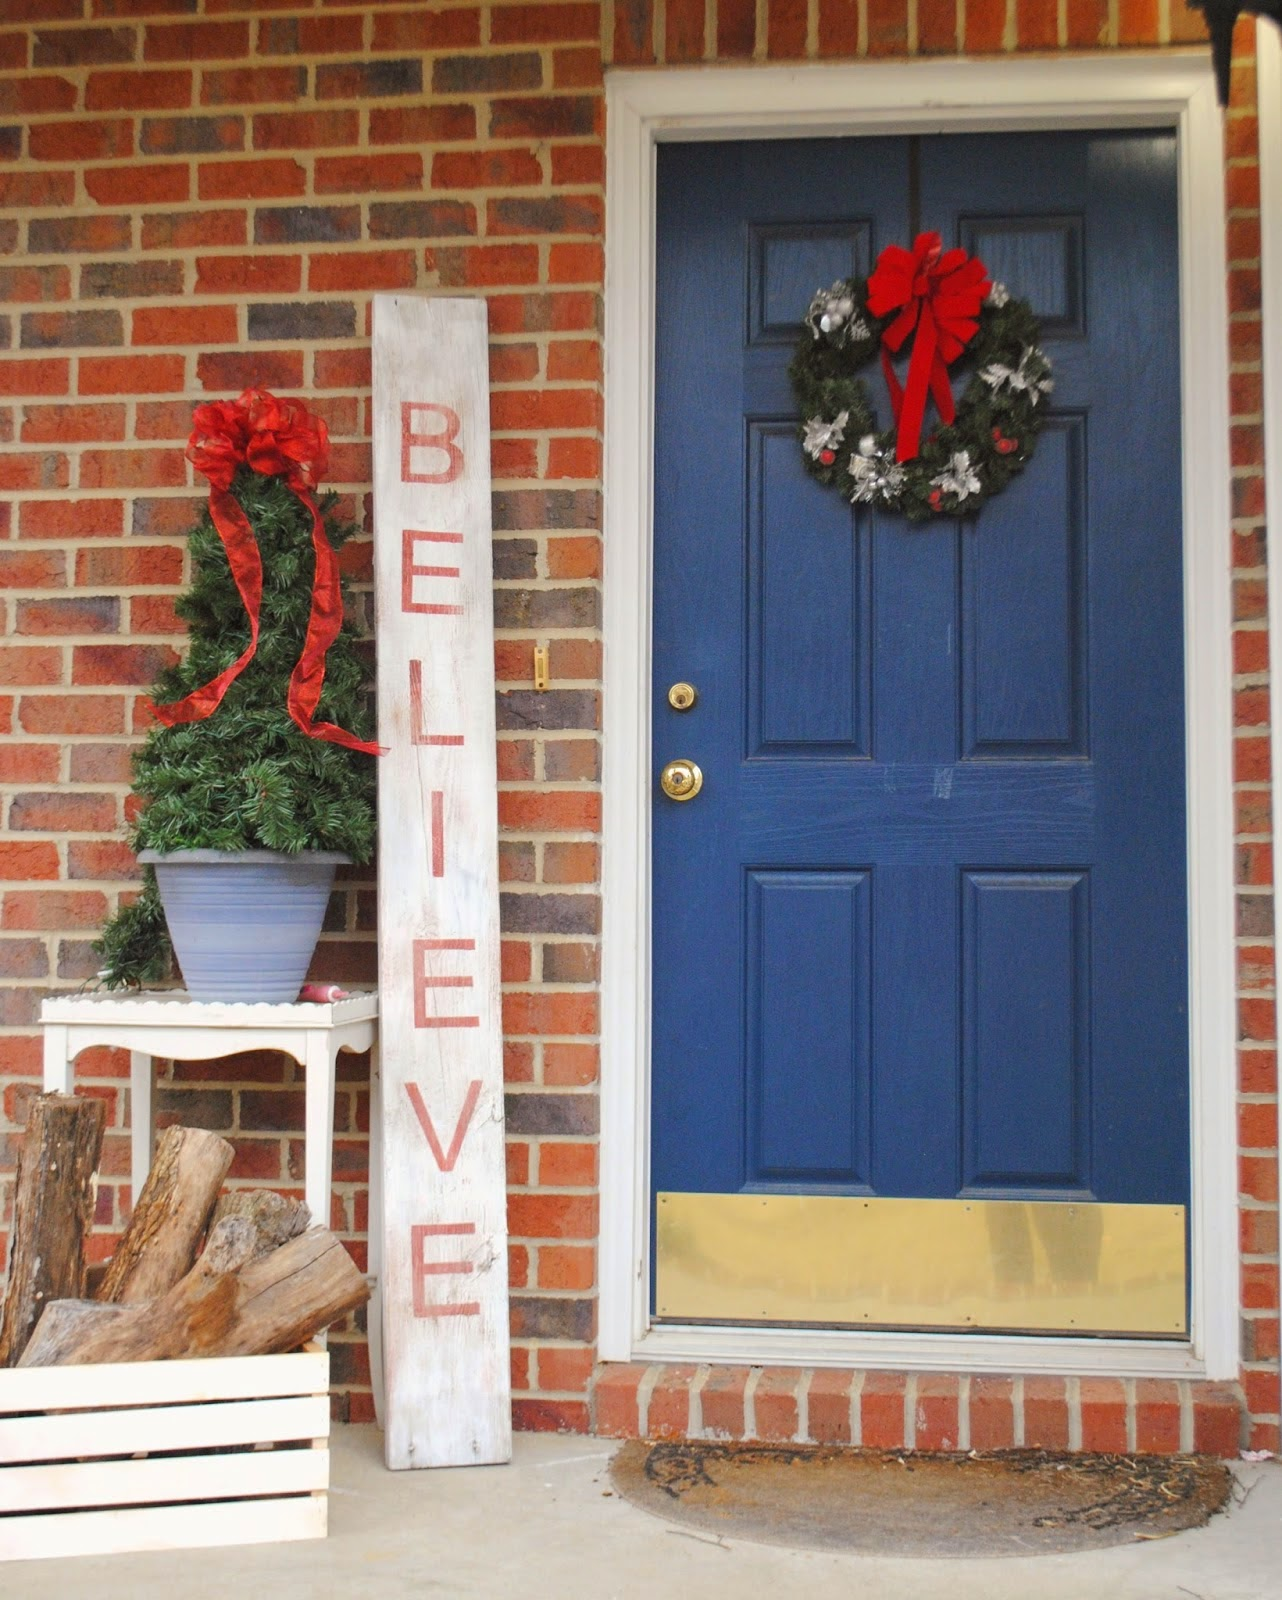 giant-believe-door-sign